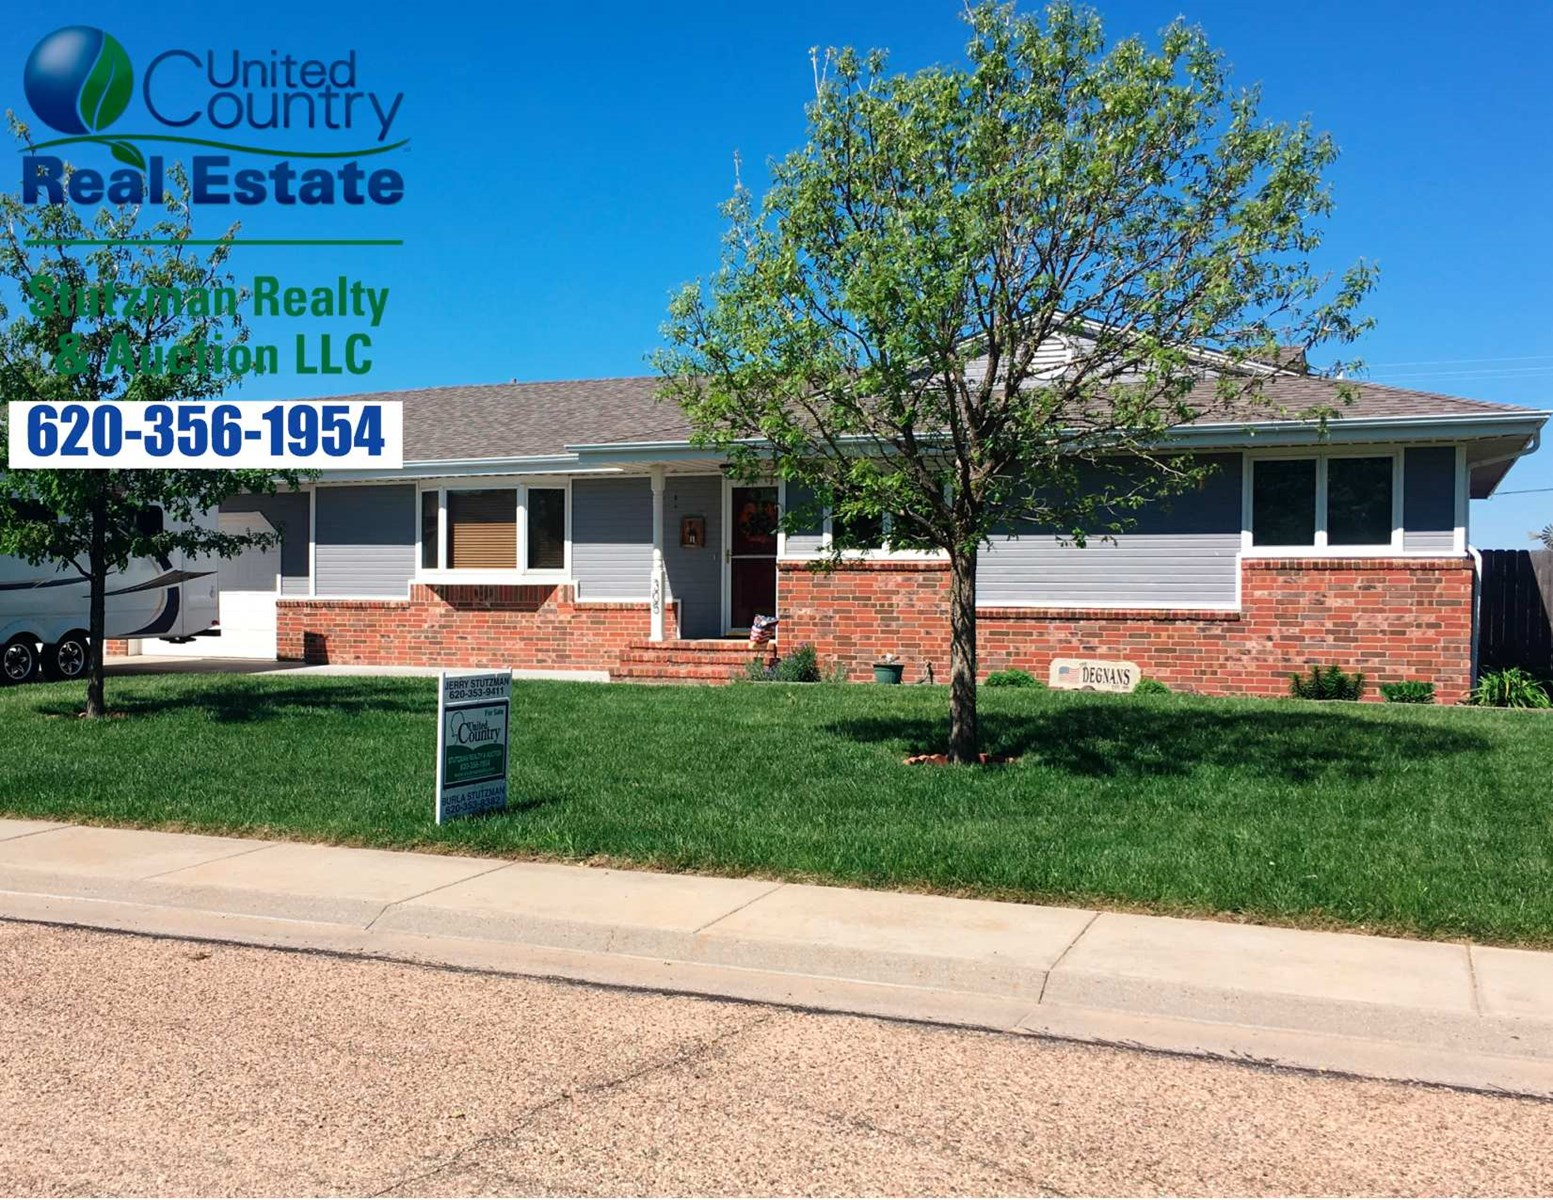 BEAUTIFUL SPACIOUS HOME FOR SALE IN ULYSSES, KANSAS